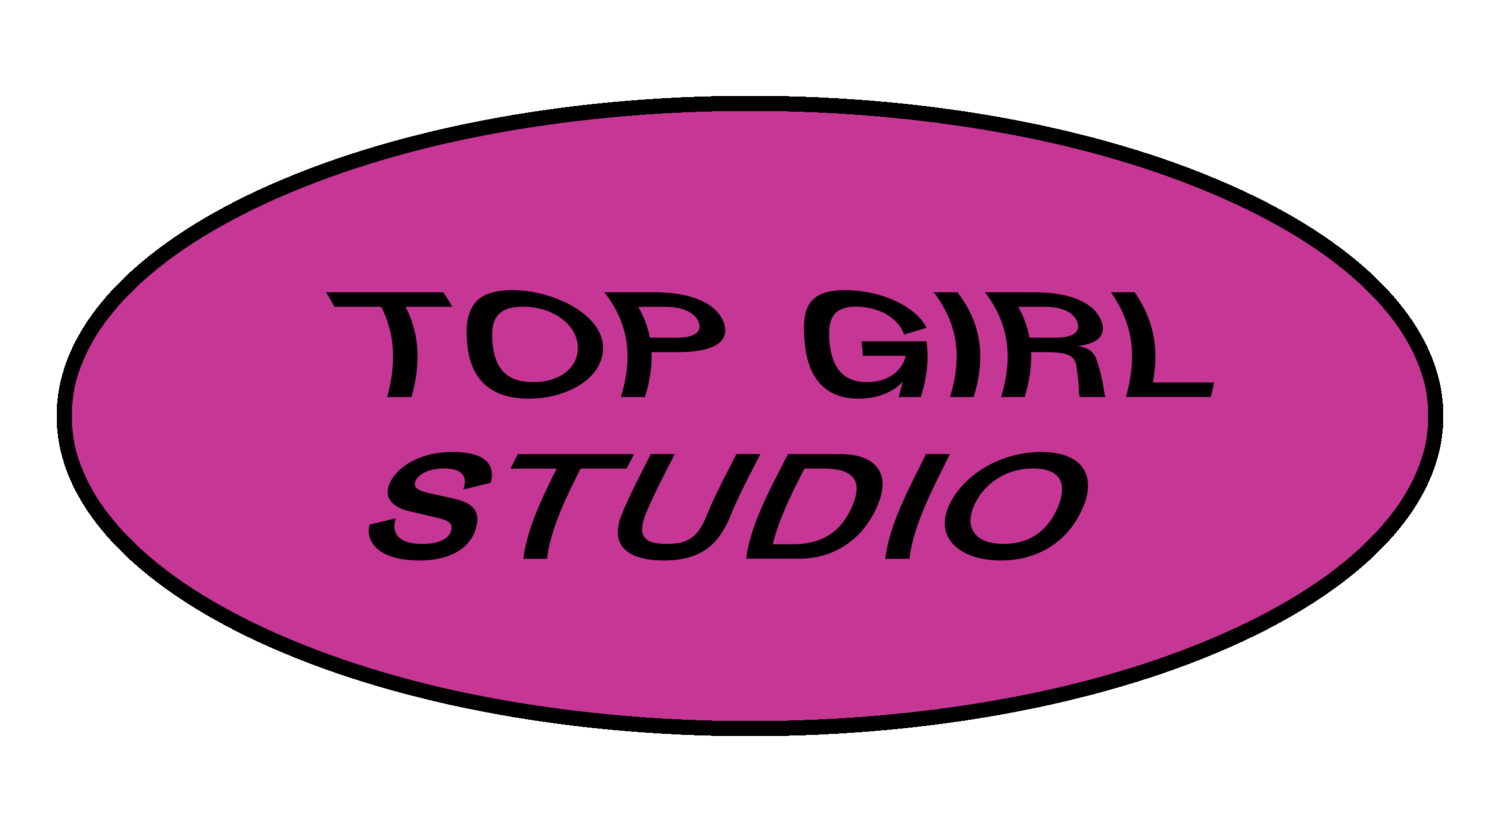 TOP GIRL STUDIO